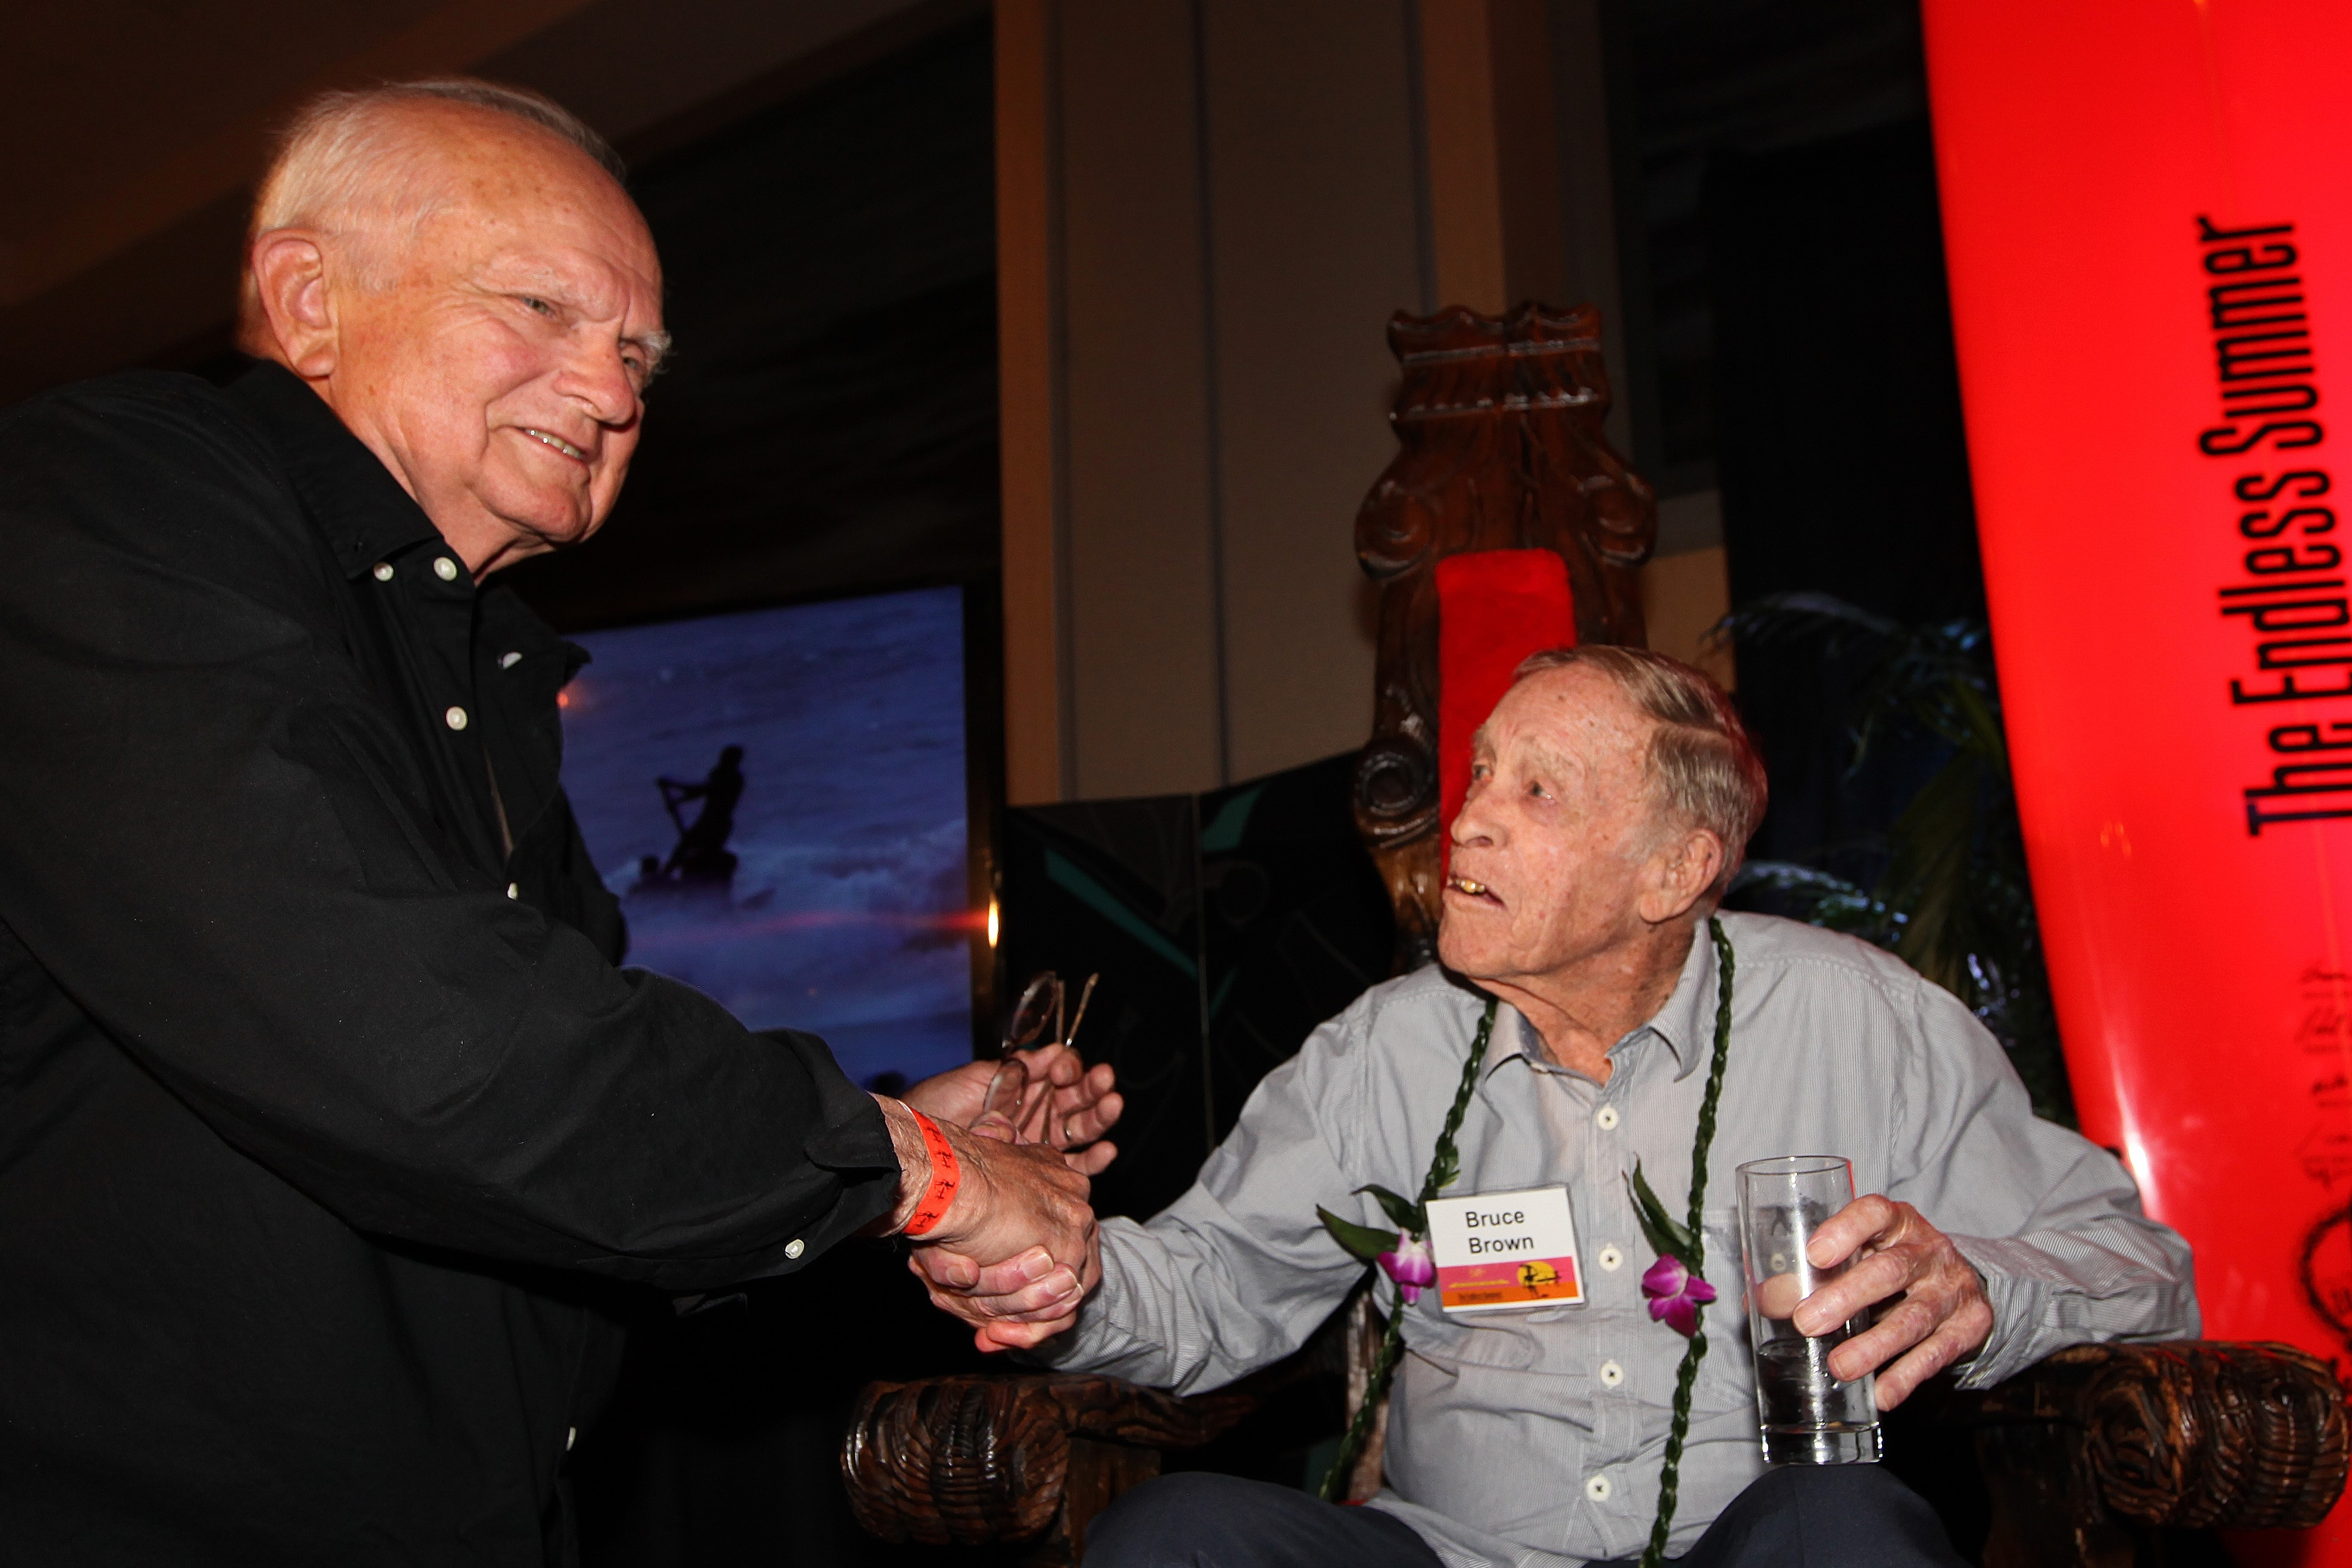 Larry Lindberg Producer For ABC Wild World Of Sports With Bruce Brown At The First Launch Endless Summer Book And Box Set